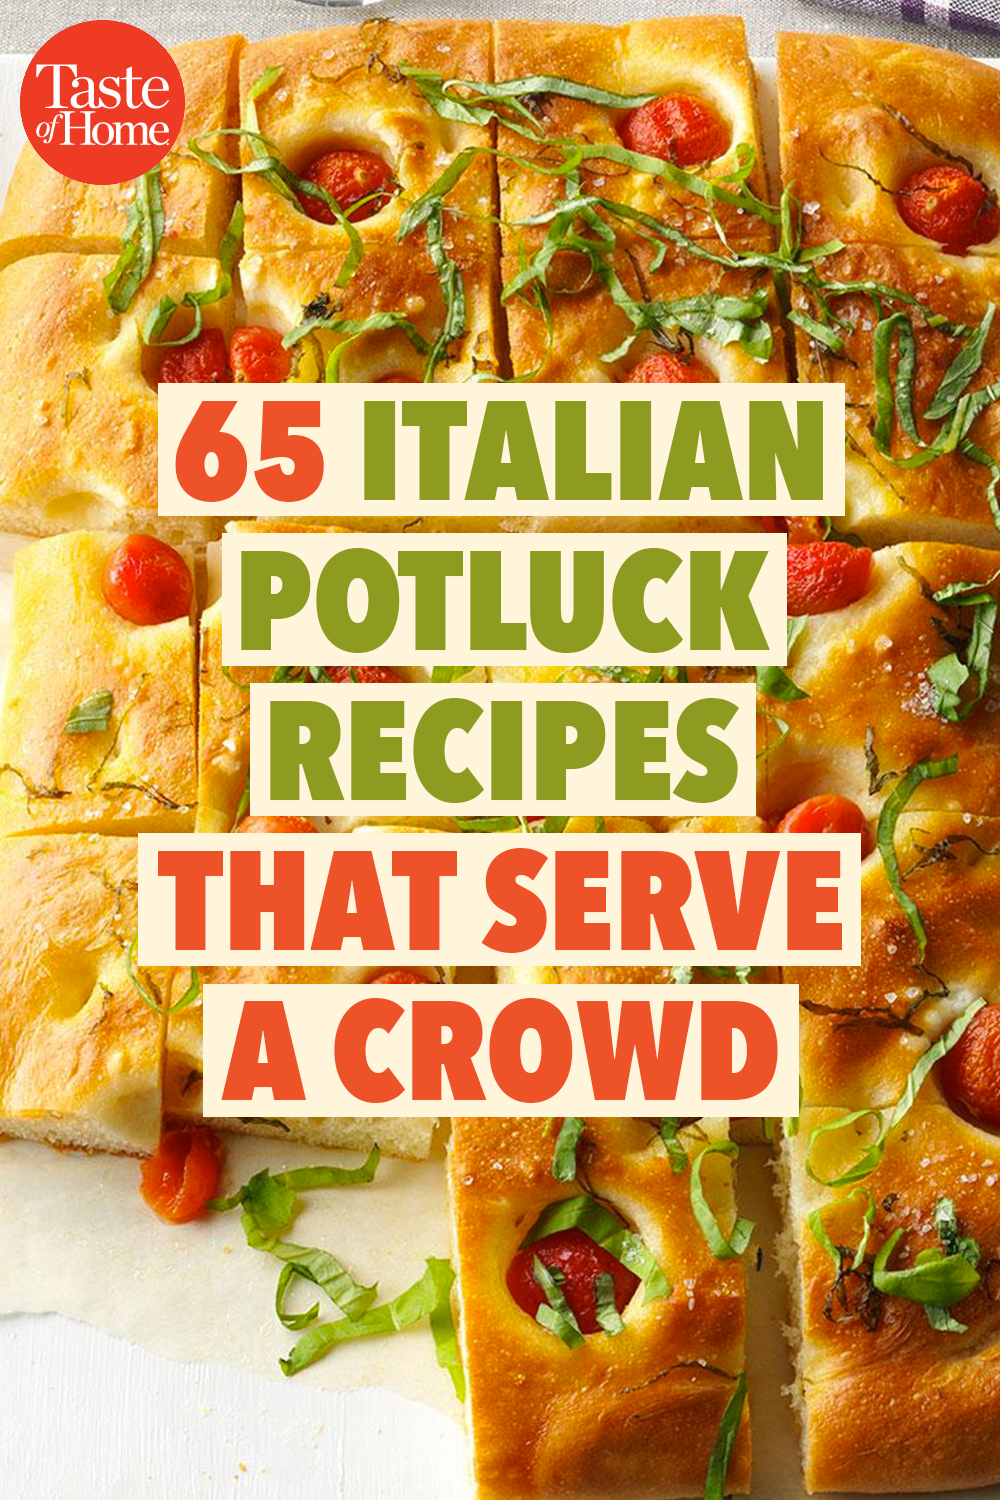 65 Italian Potluck Recipes That Serve A Crowd Potluck Recipes Italian Recipes Summer Potluck Recipes